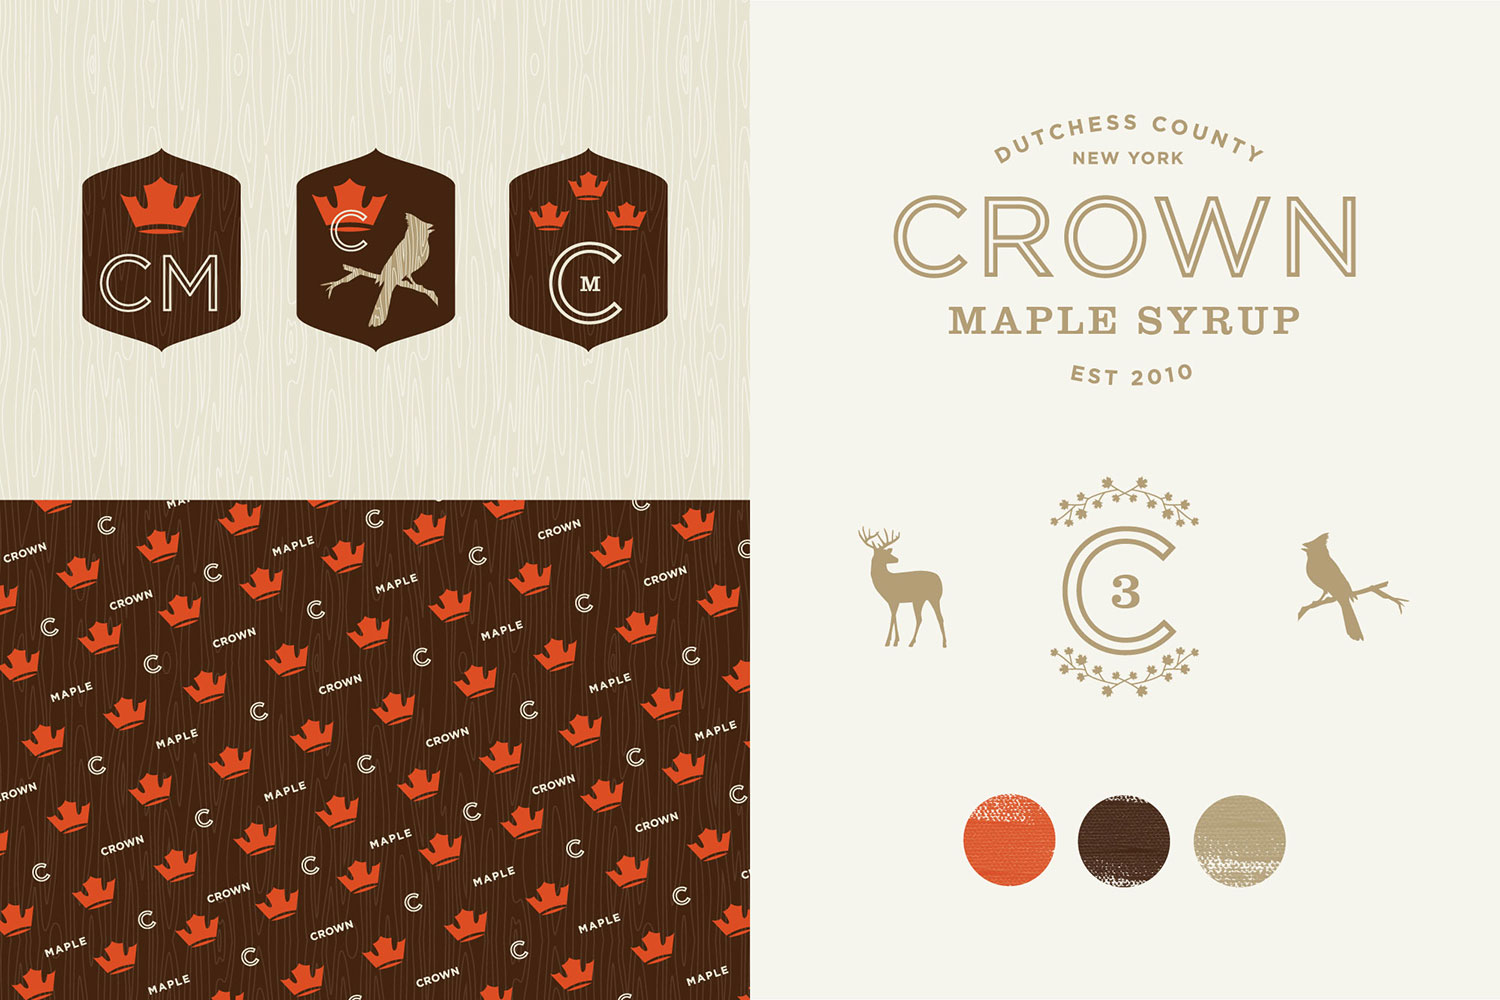 crownmapple mrcup 06